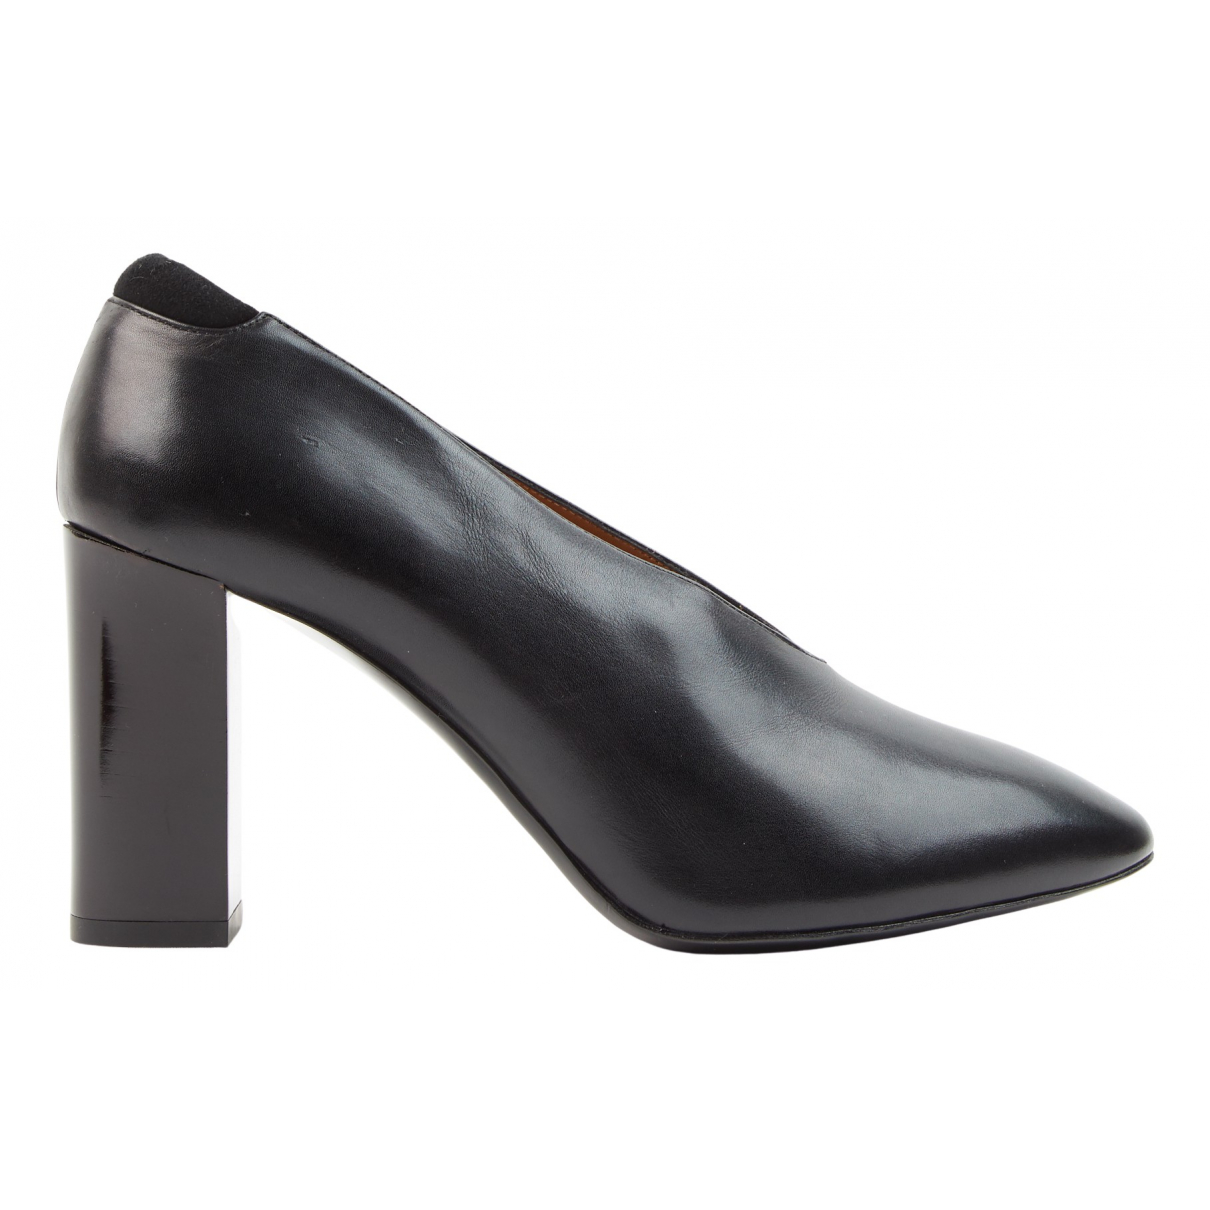 Acne Studios N Black Leather Heels for Women 37 EU